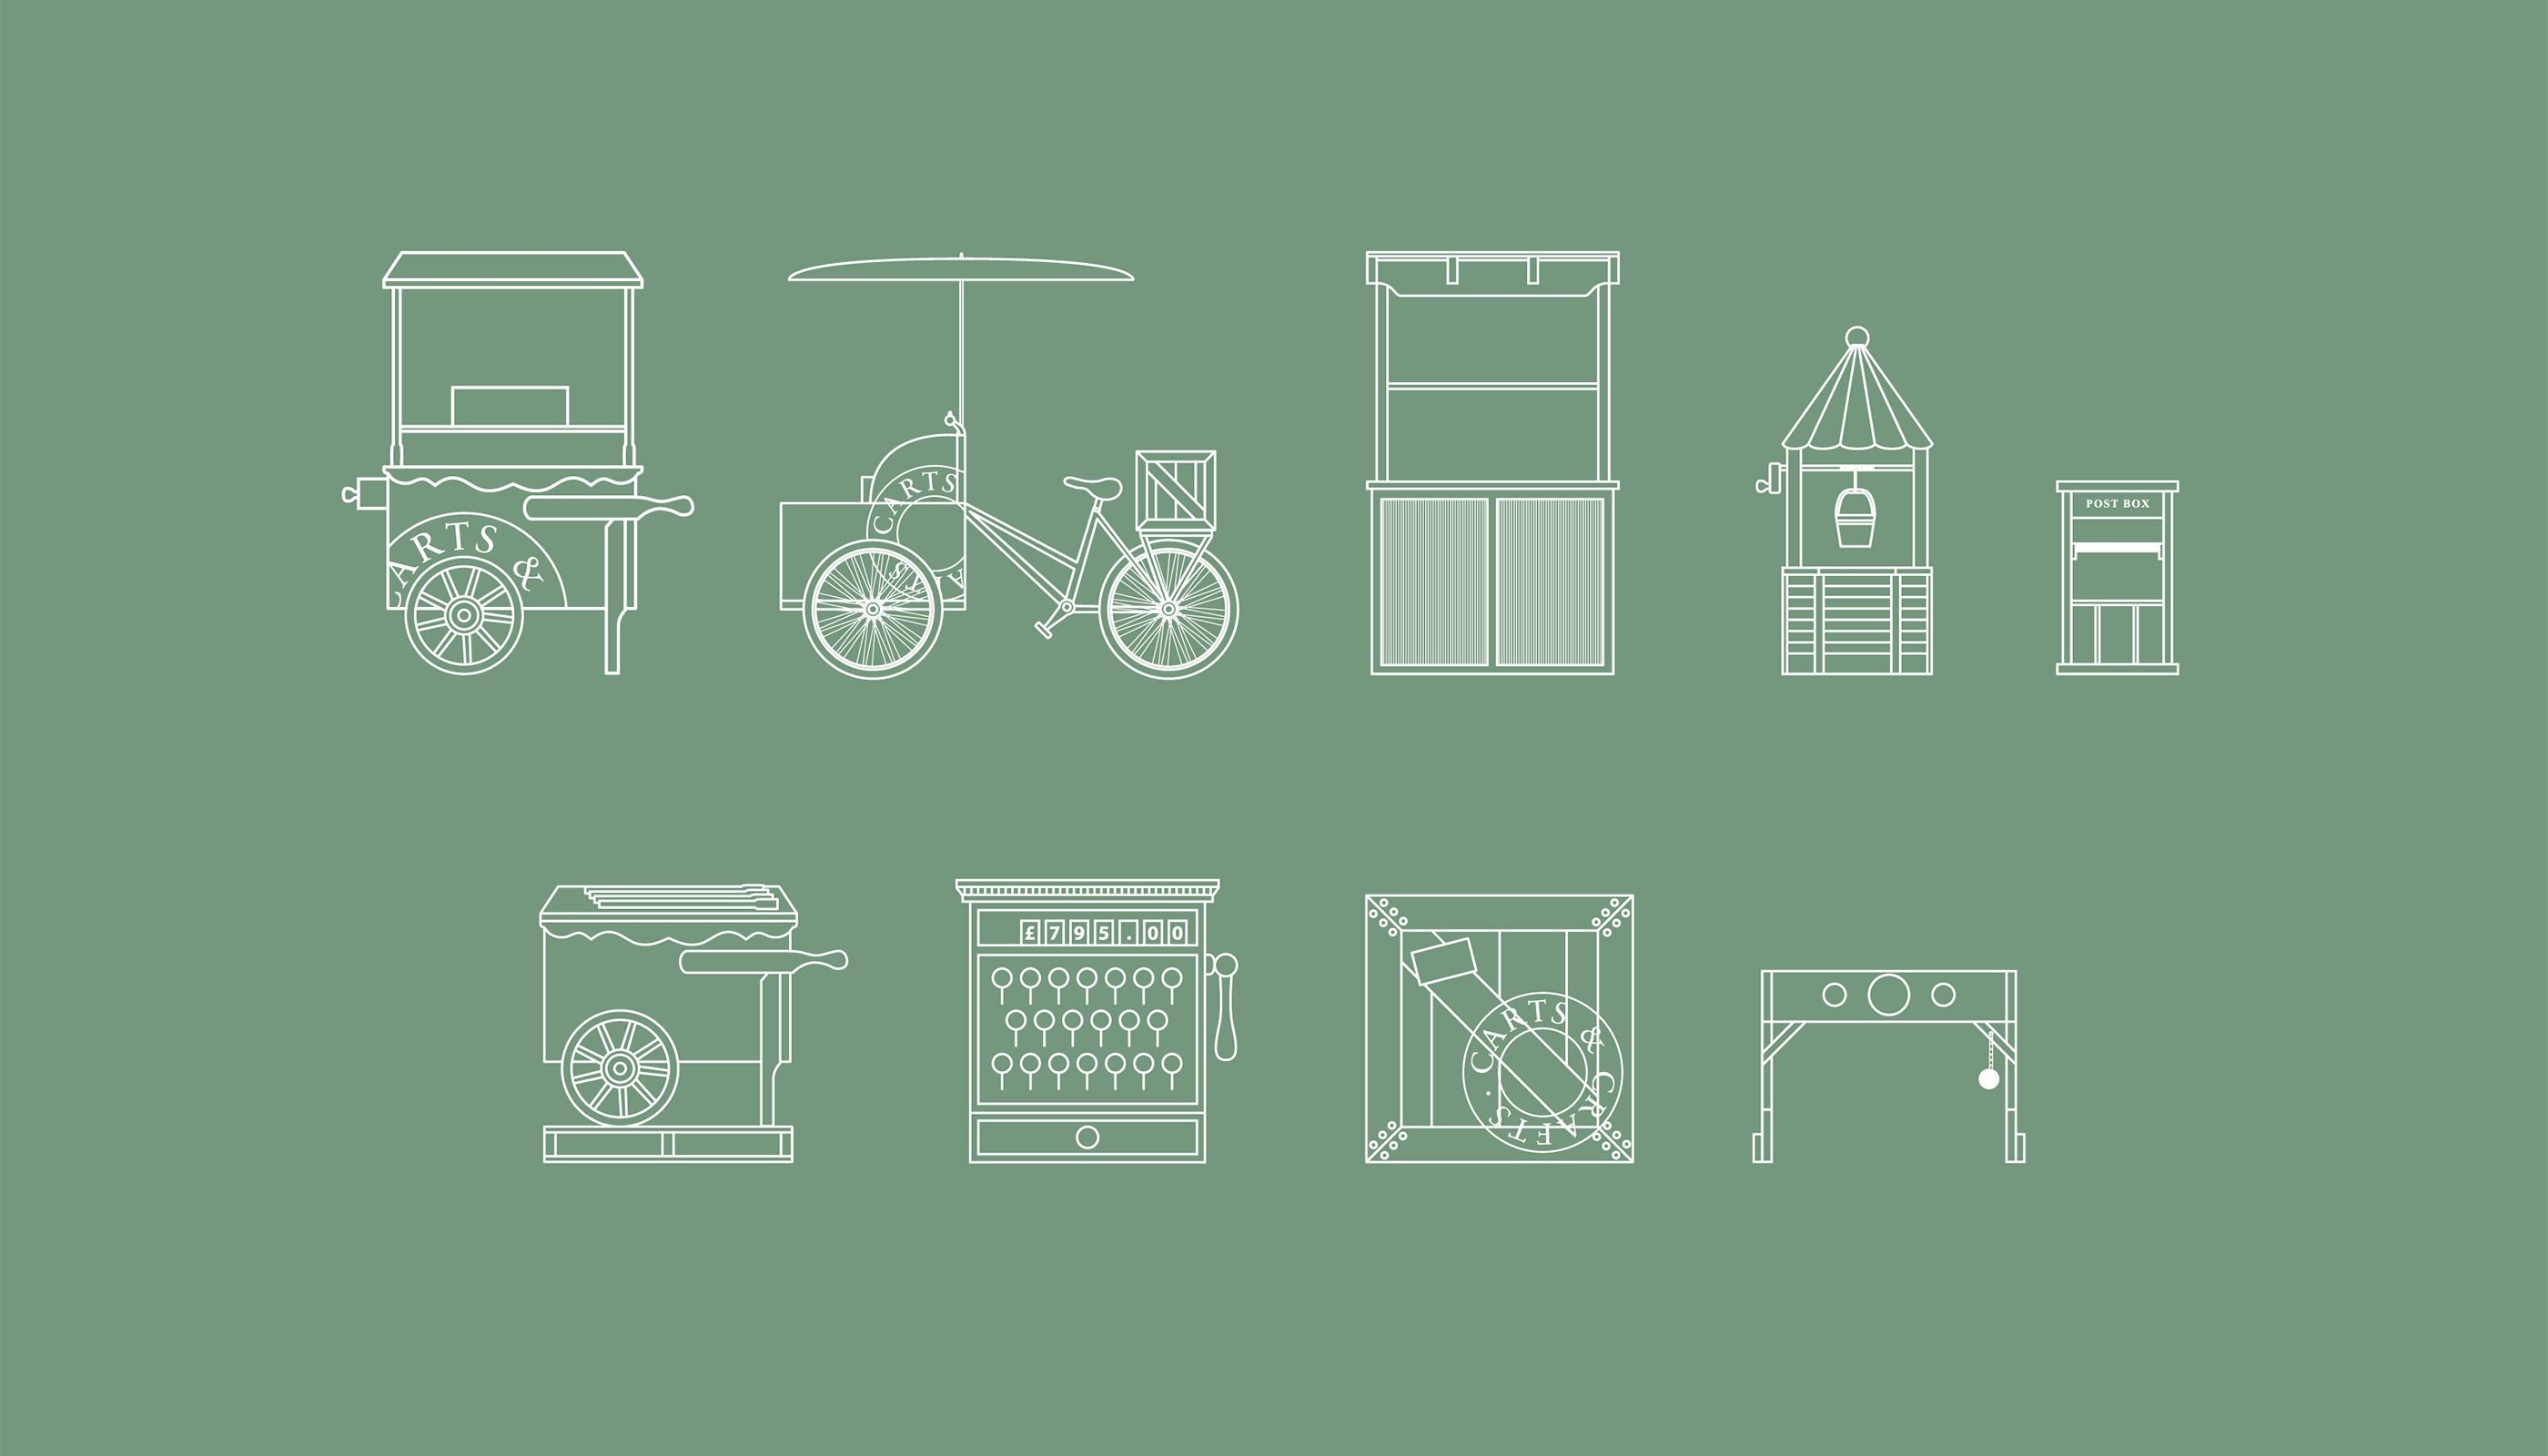 Icon illustrations for Carts & Crafts in Harwich, Essex.